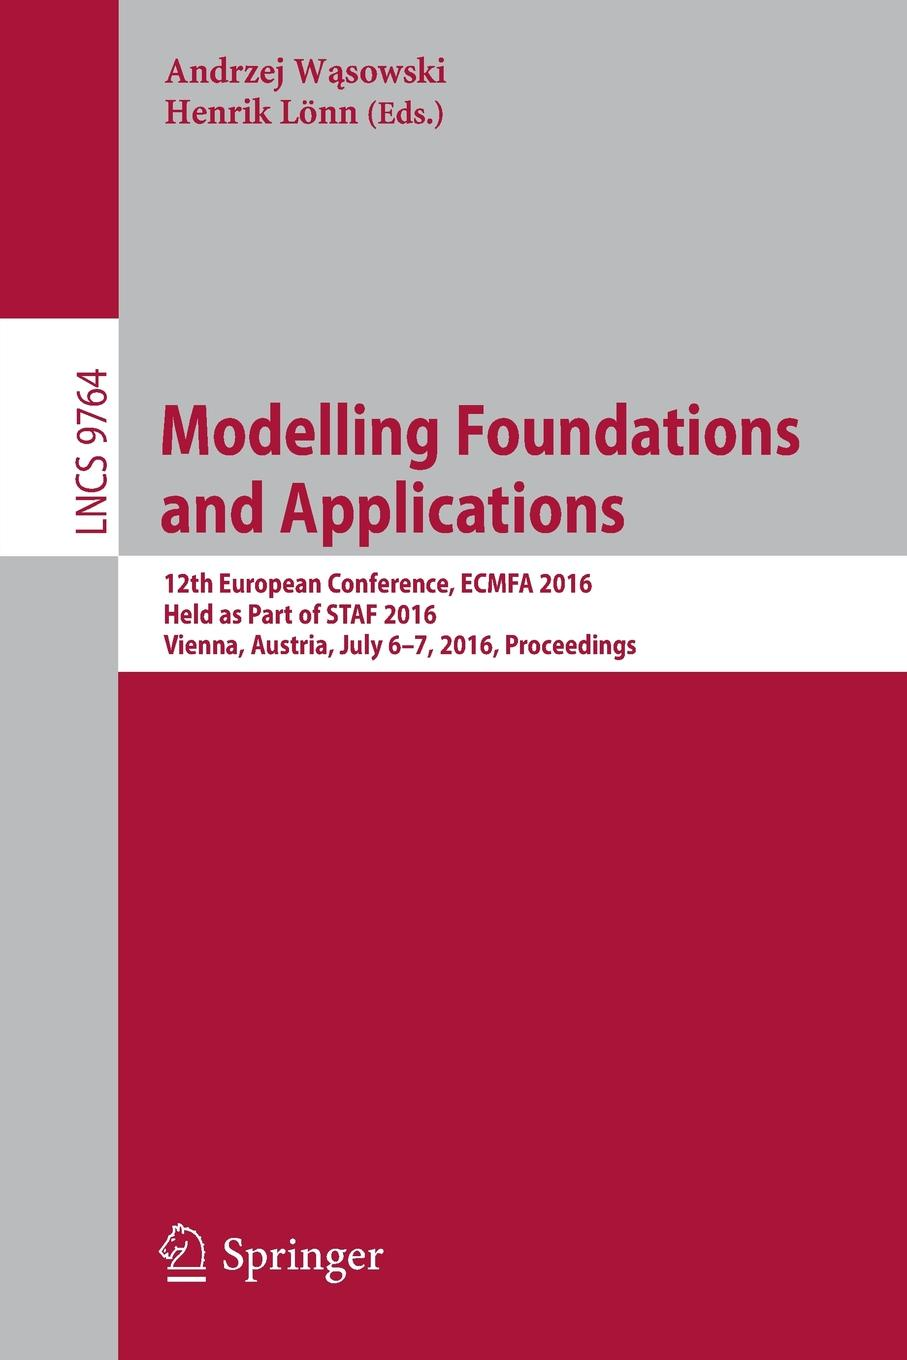 Modelling Foundations and Applications. 12th European Conference, ECMFA 2016, Held as Part of STAF 2016, Vienna, Austria, July 6-7, 2016, Proceedings angela henderson c family theories foundations and applications